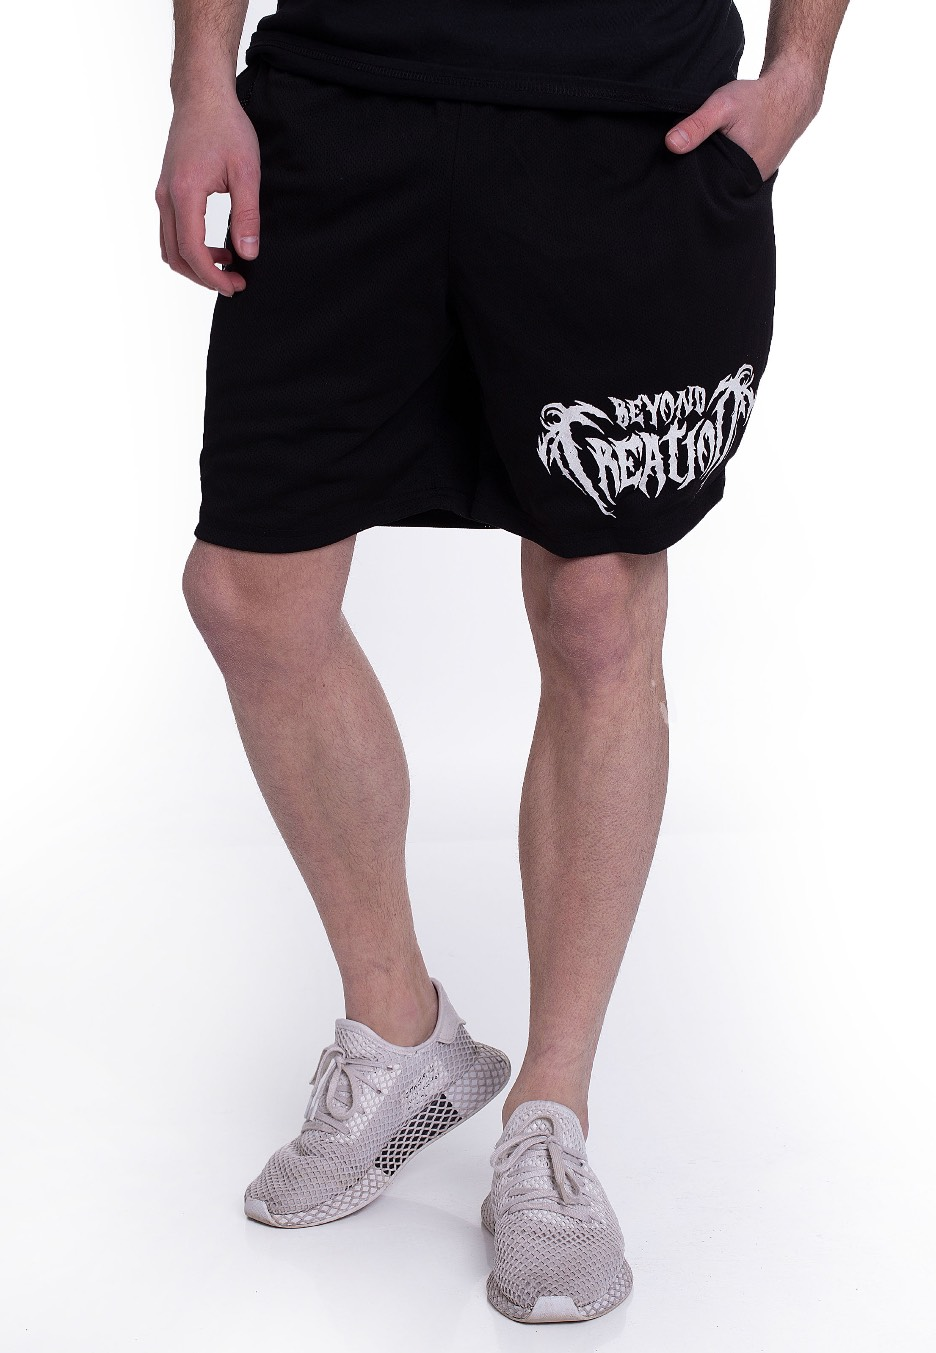 Merchandise Shorts - Specials - Merchandise, Streetwear and Tickets -  Impericon.com CH